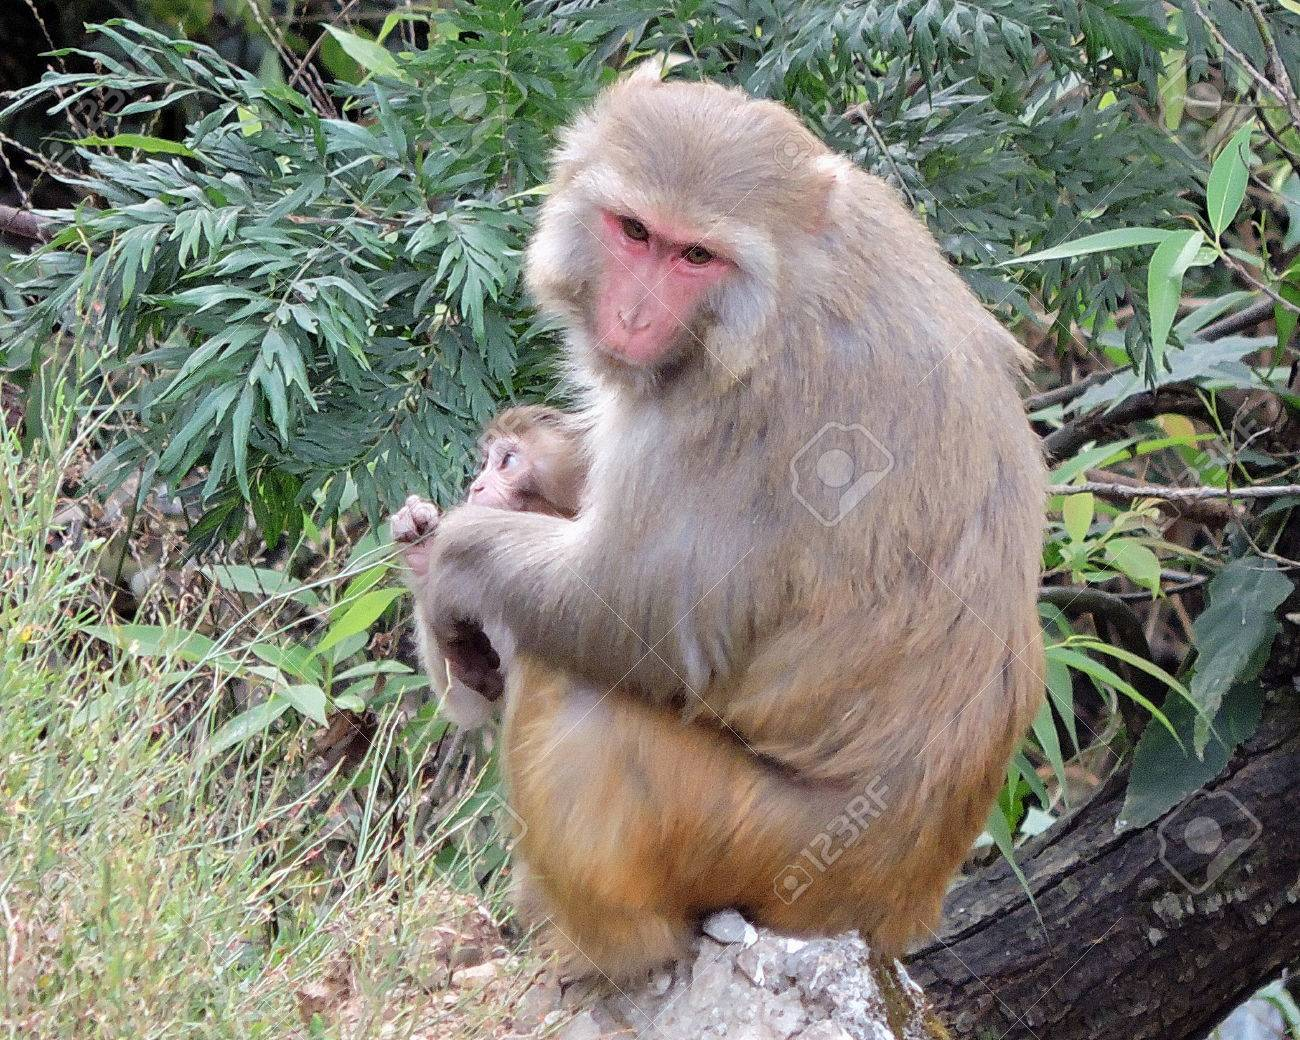 Monkey Rhesus Macaque India Stock Photo - 69420338